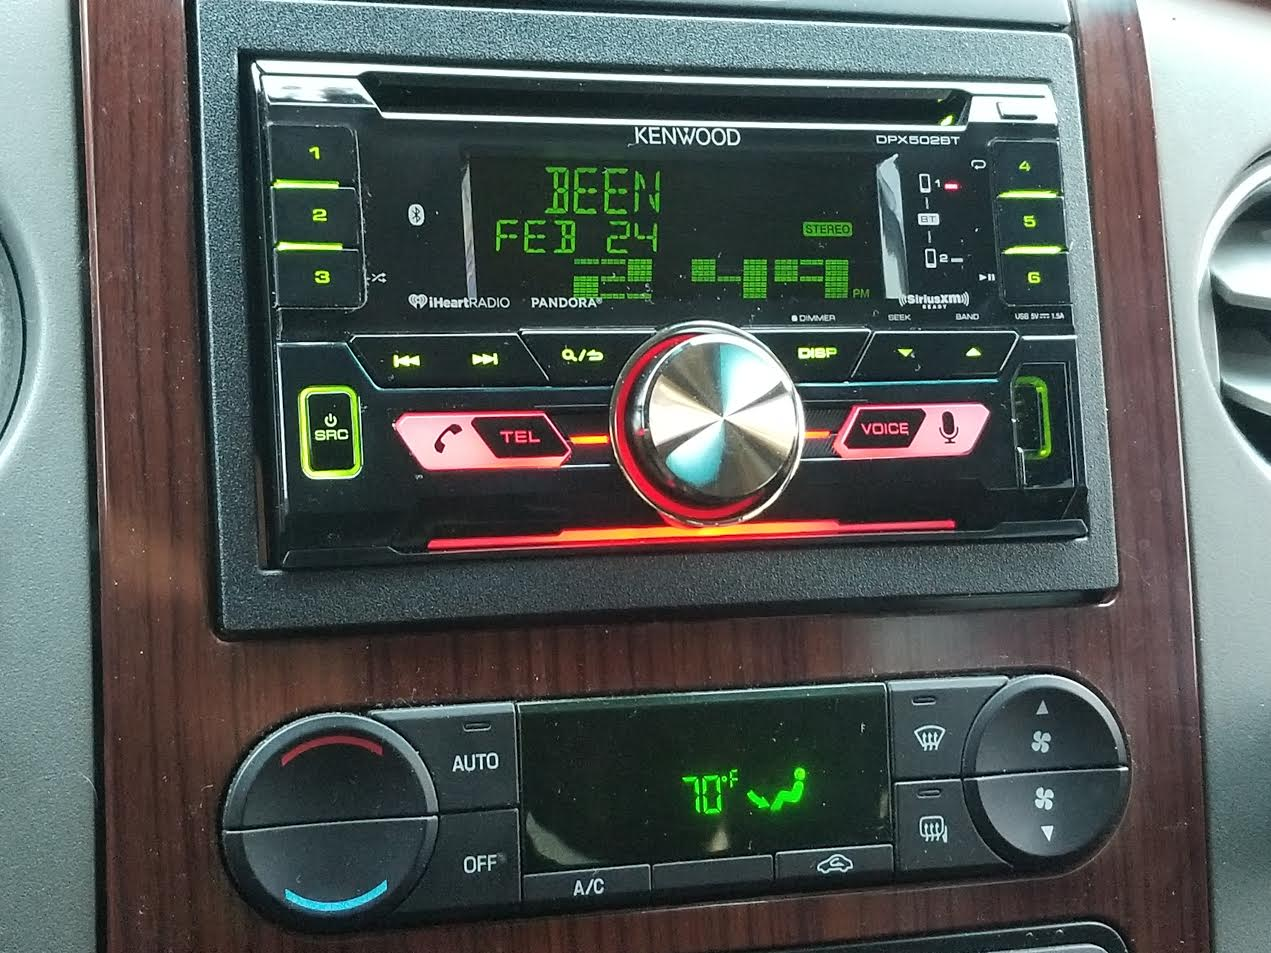 Kenwood DPX502BT CD receiver at Crutchfield